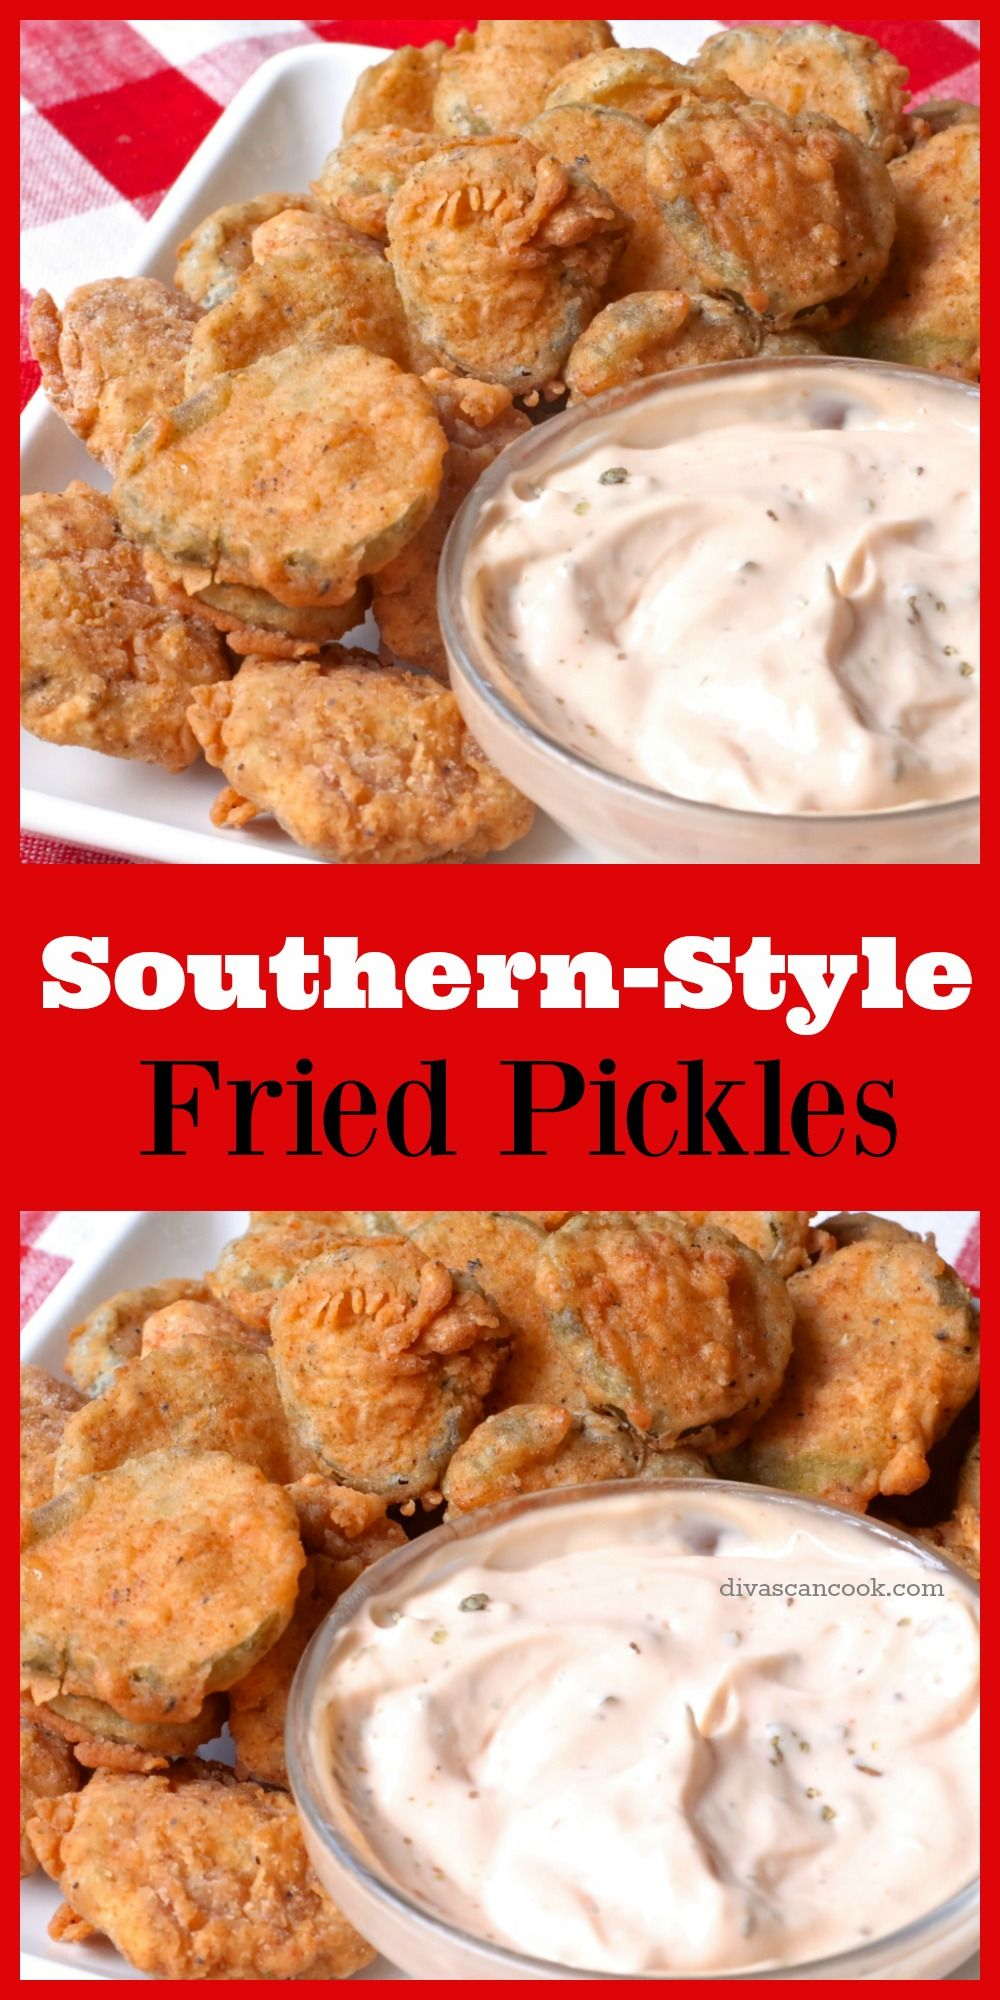 Southern Fried Pickles Recipe Fried pickles, Fried